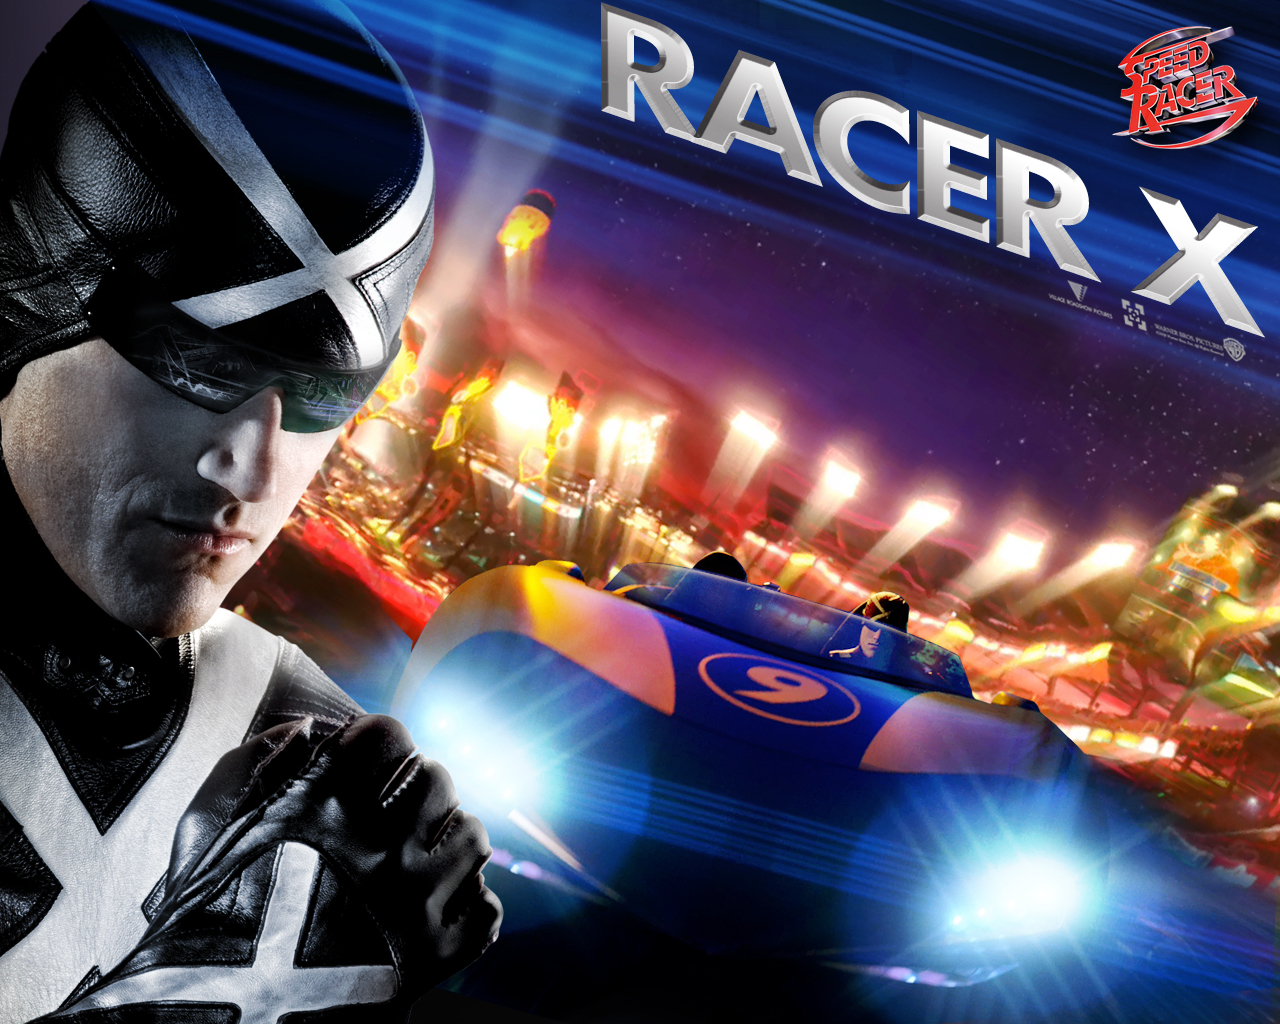 Movies Movie Speed Racer HD Wallpaper